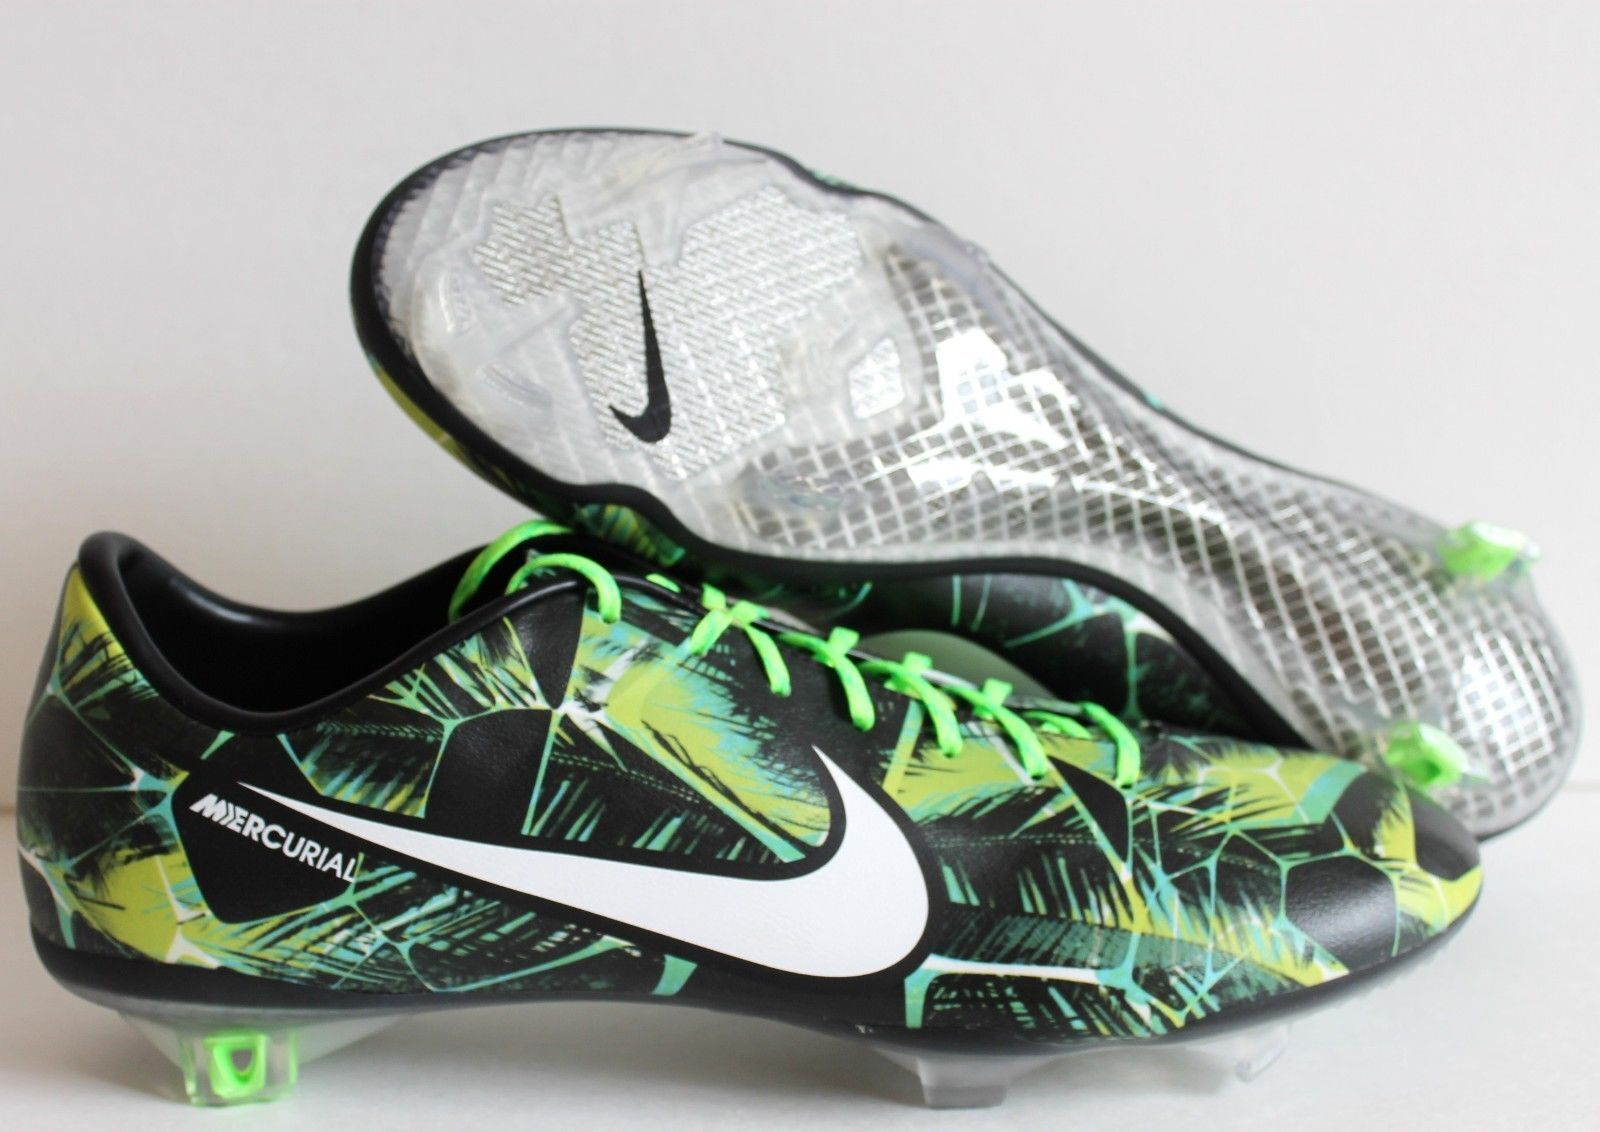 nike vapor 9 soccer cleats